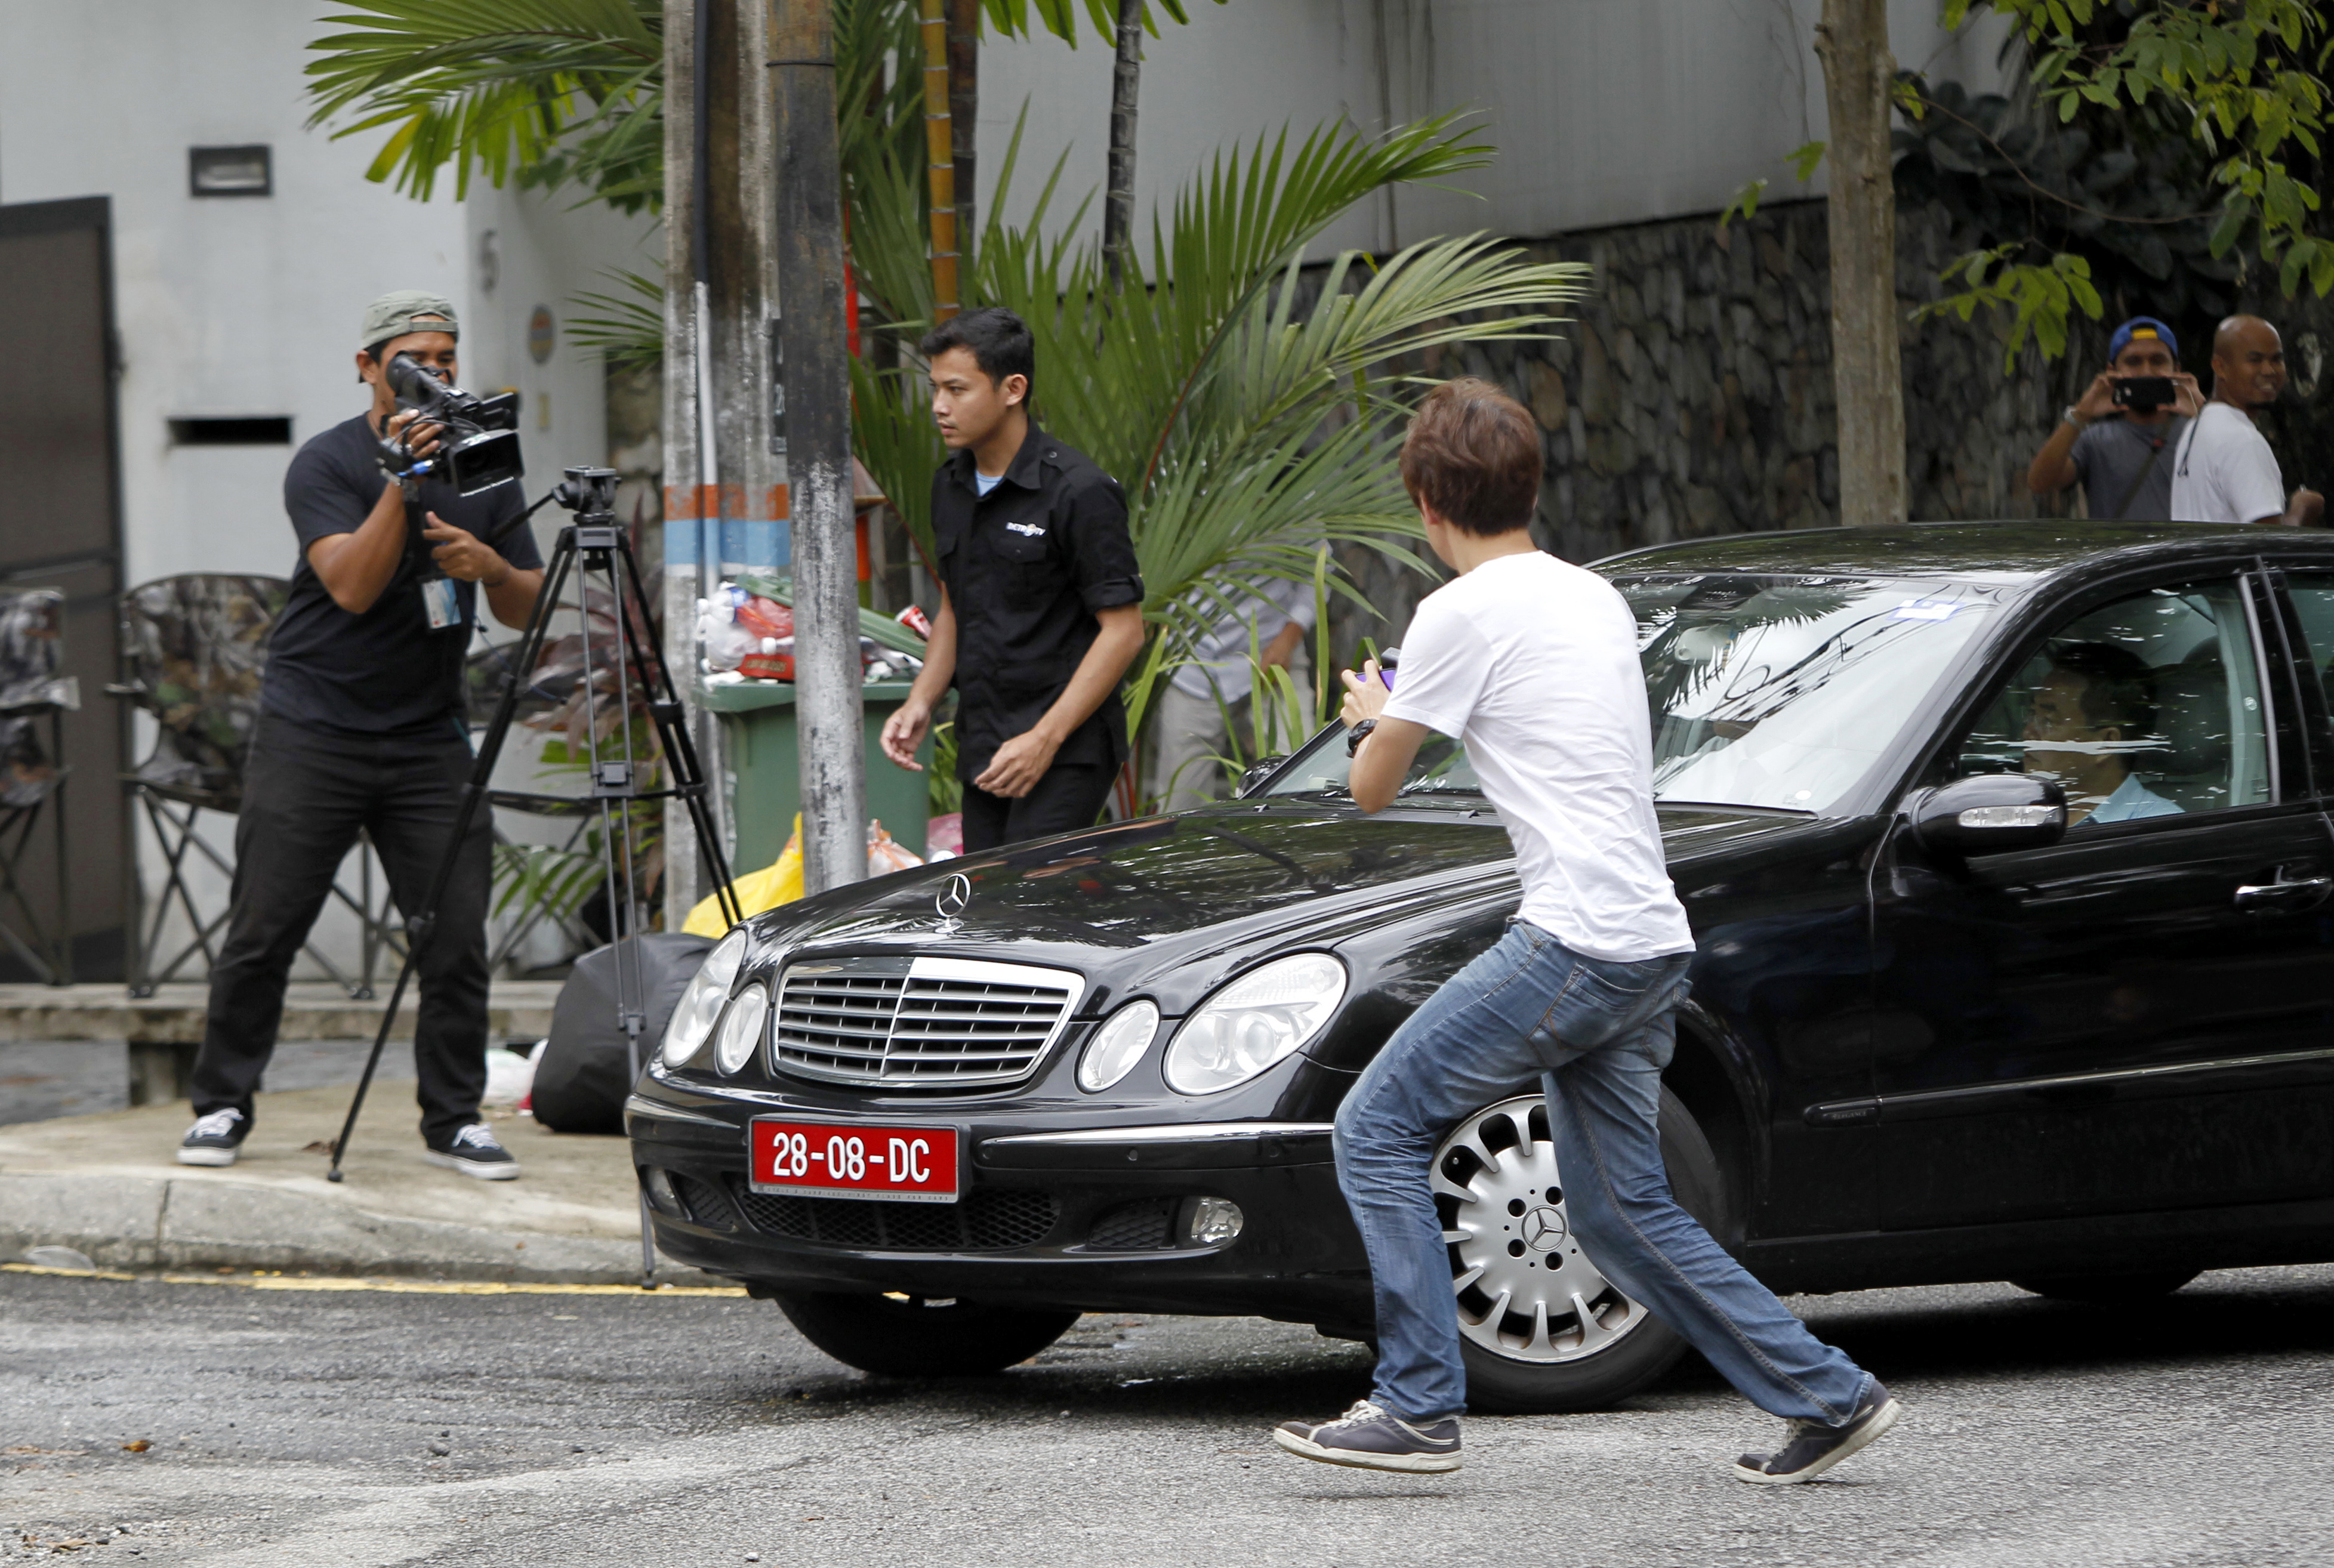 Journalists chase a car leaving North Korean Embassy in Kuala Lumpur, Malaysia on Feb. 27, 2017. (AP Photo/Daniel Chan)